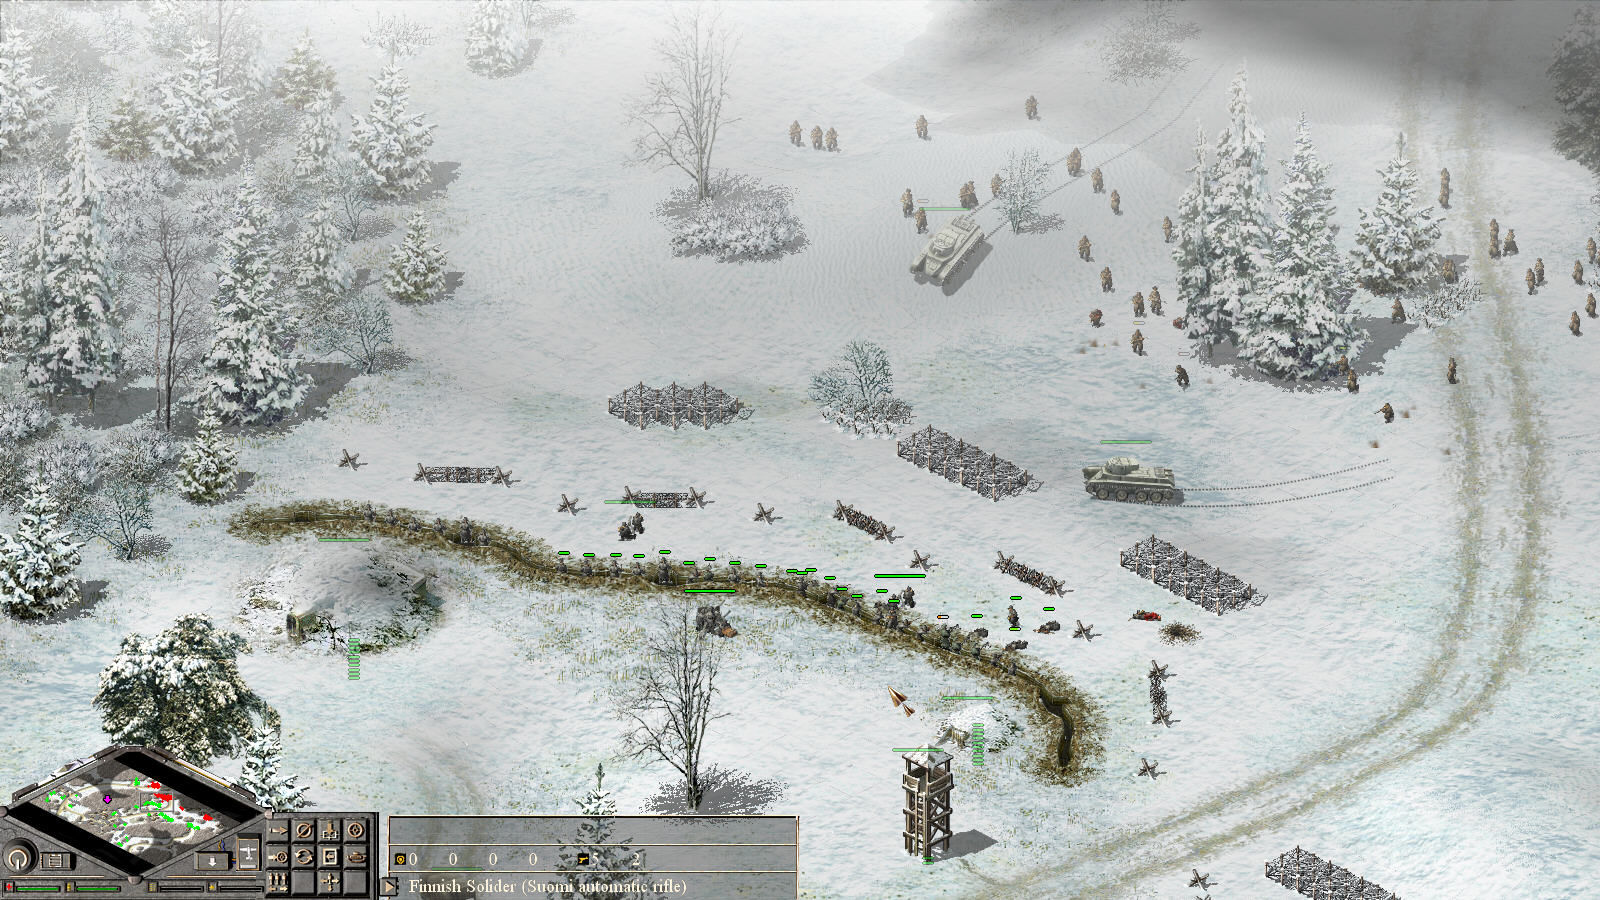 Talvisota: Icy Hell Windows Russian forces attacking.